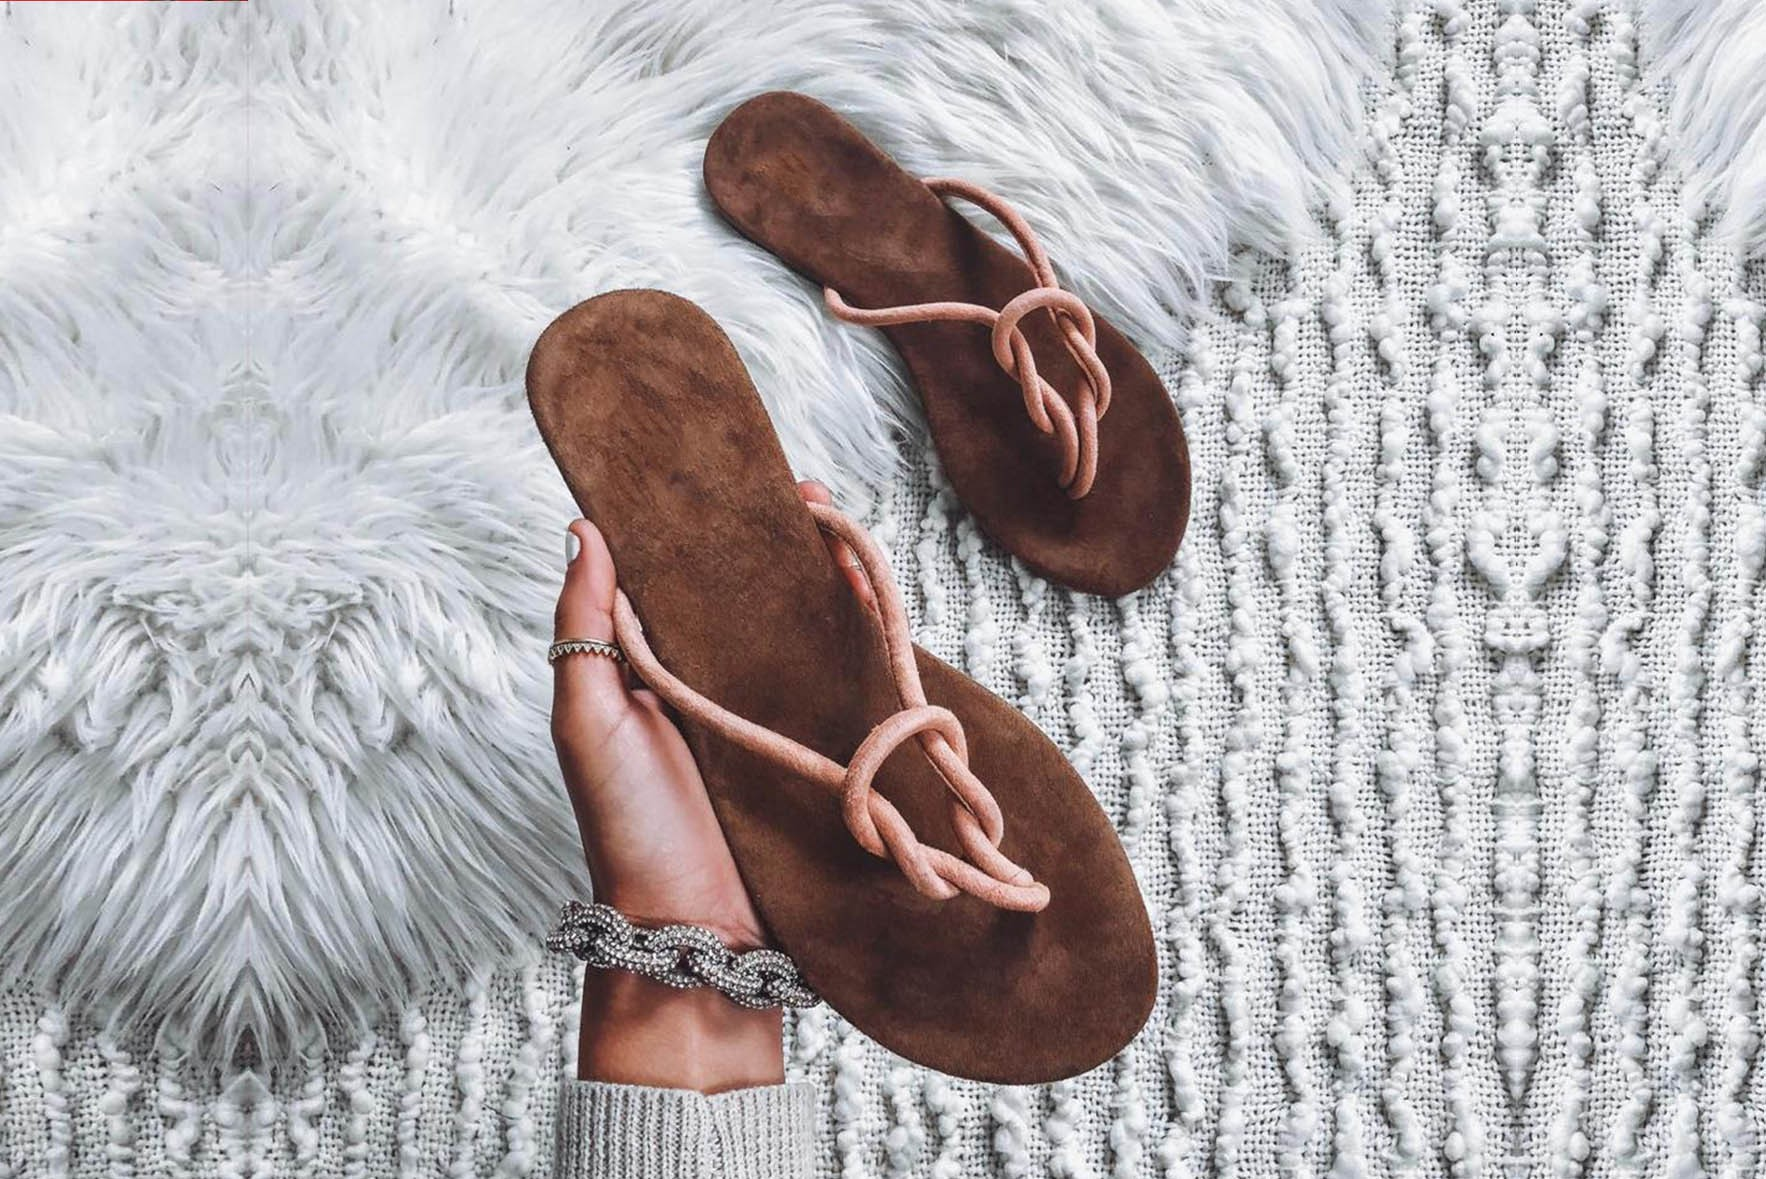 Ready for vacay flats